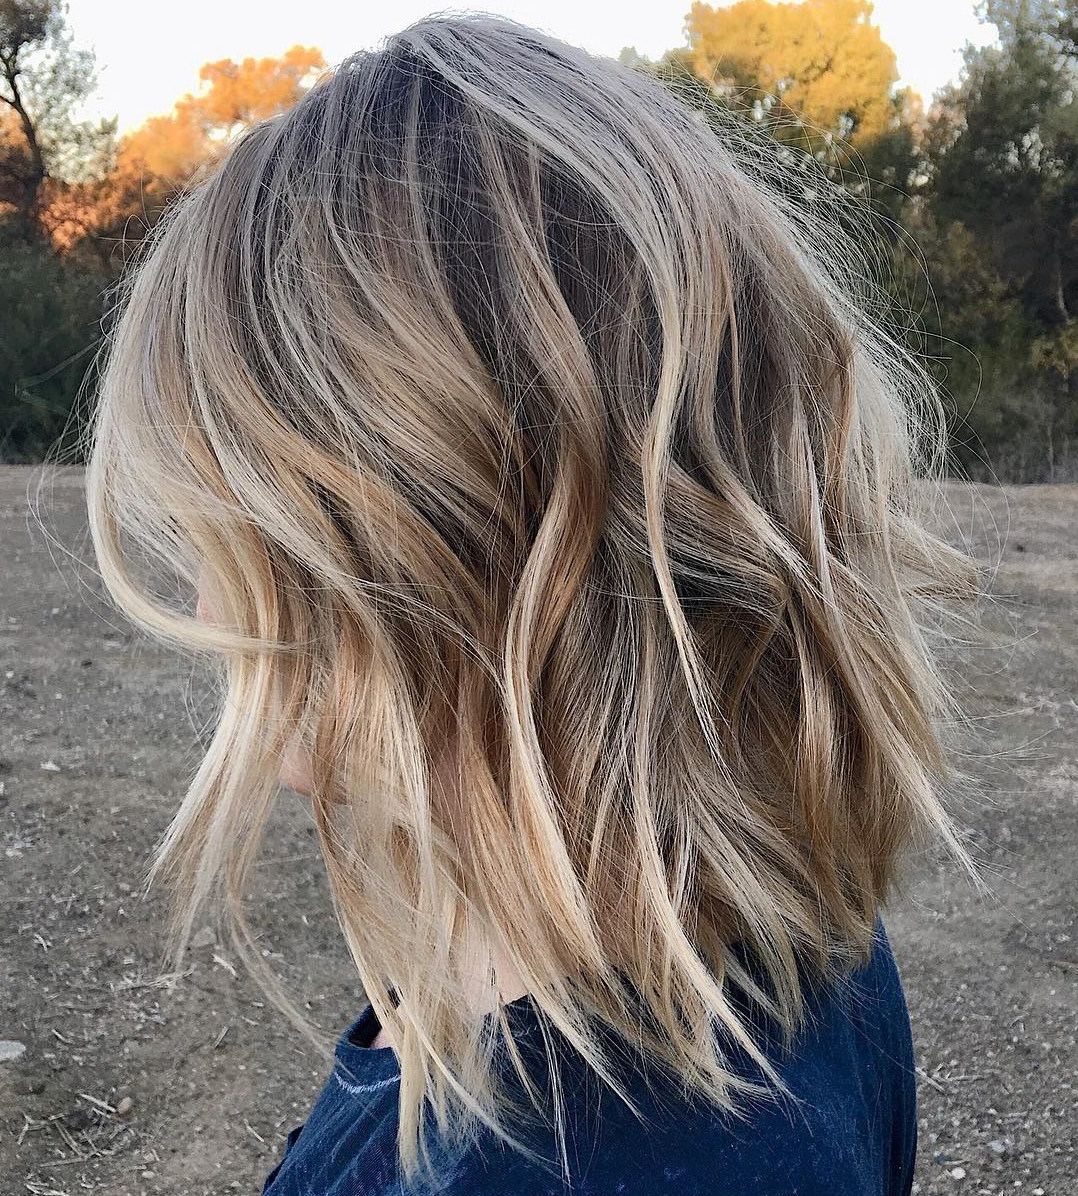 Most Recent Long Haircuts With Chunky Angled Layers With 40 Awesome Ideas For Layered Bob Hairstyles You Can't Miss (View 13 of 20)